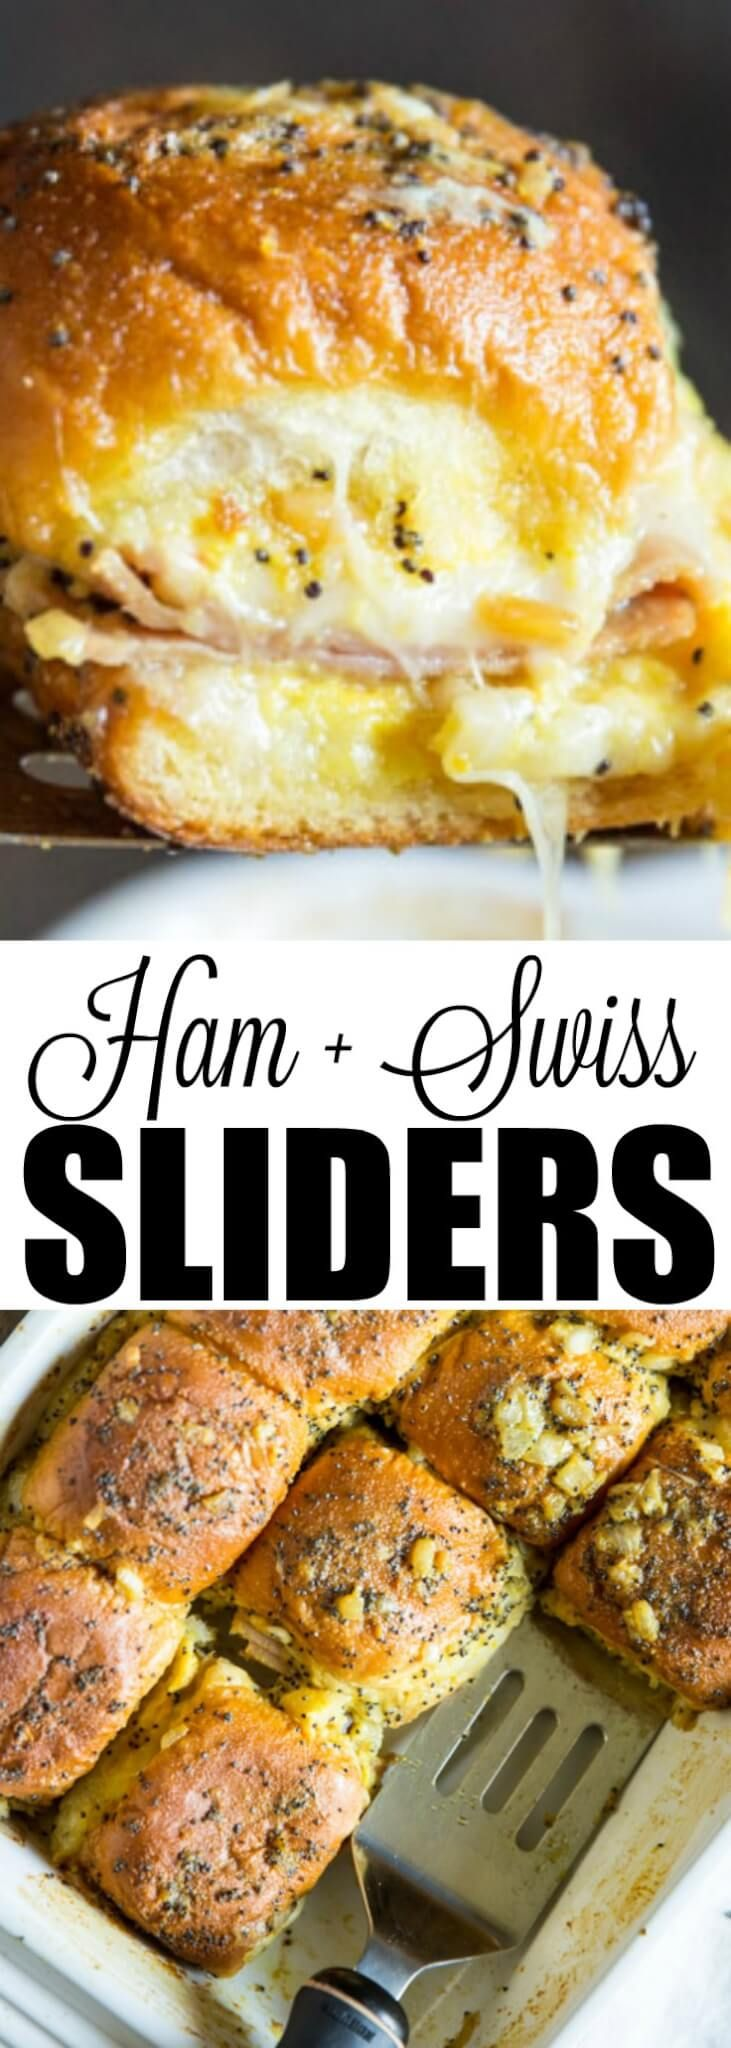 Cheesy ham sandwiches on tiny rolls topped with a poppy seed butter! These Ham and Swiss Sliders are perfect for parties and are so delicious.